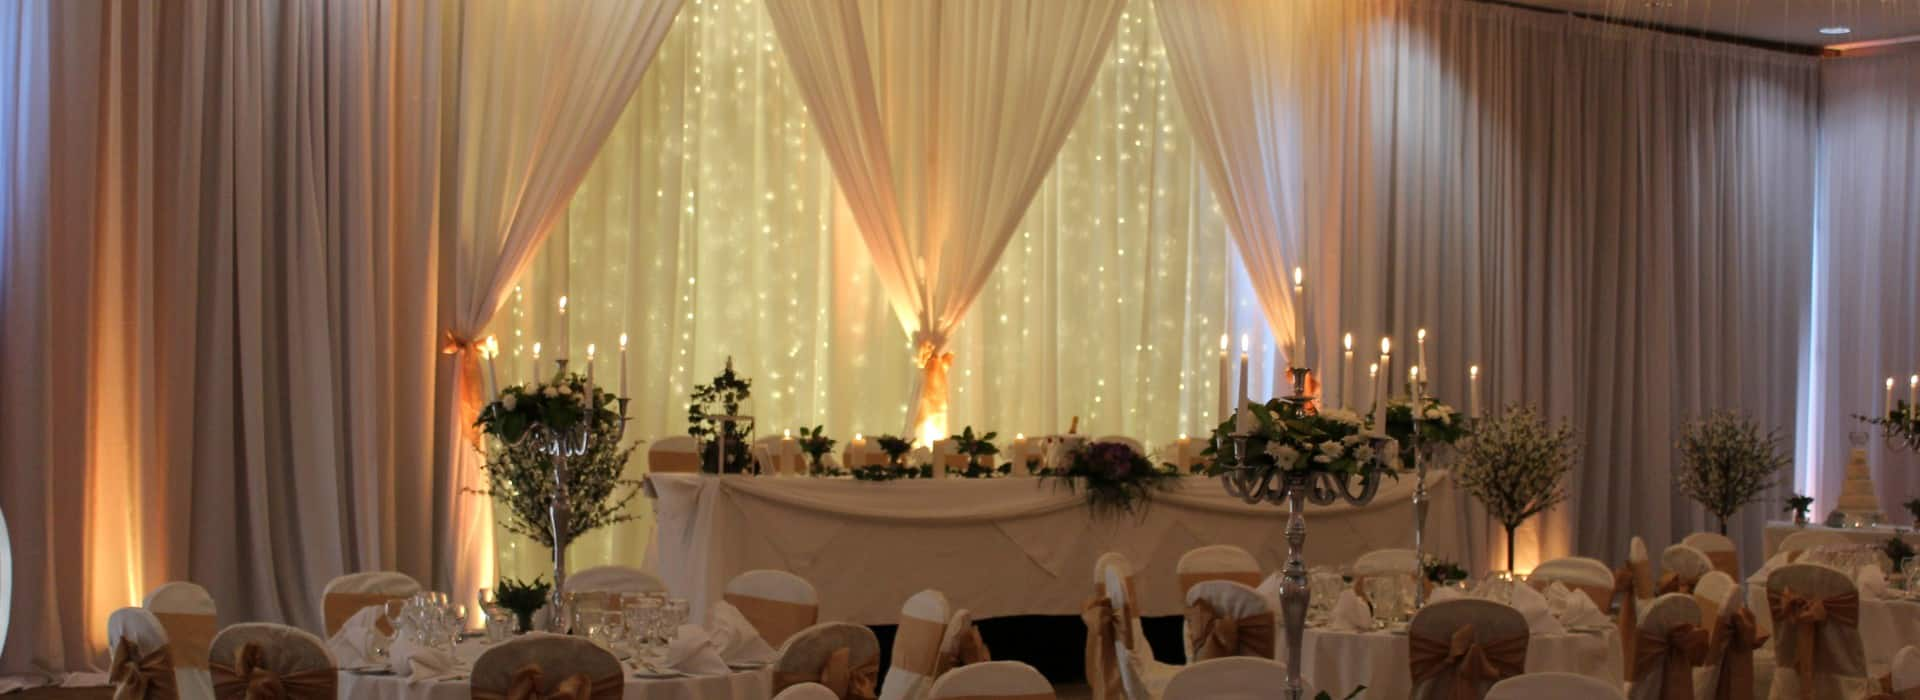 Custom Built Fairy Light Backdrop